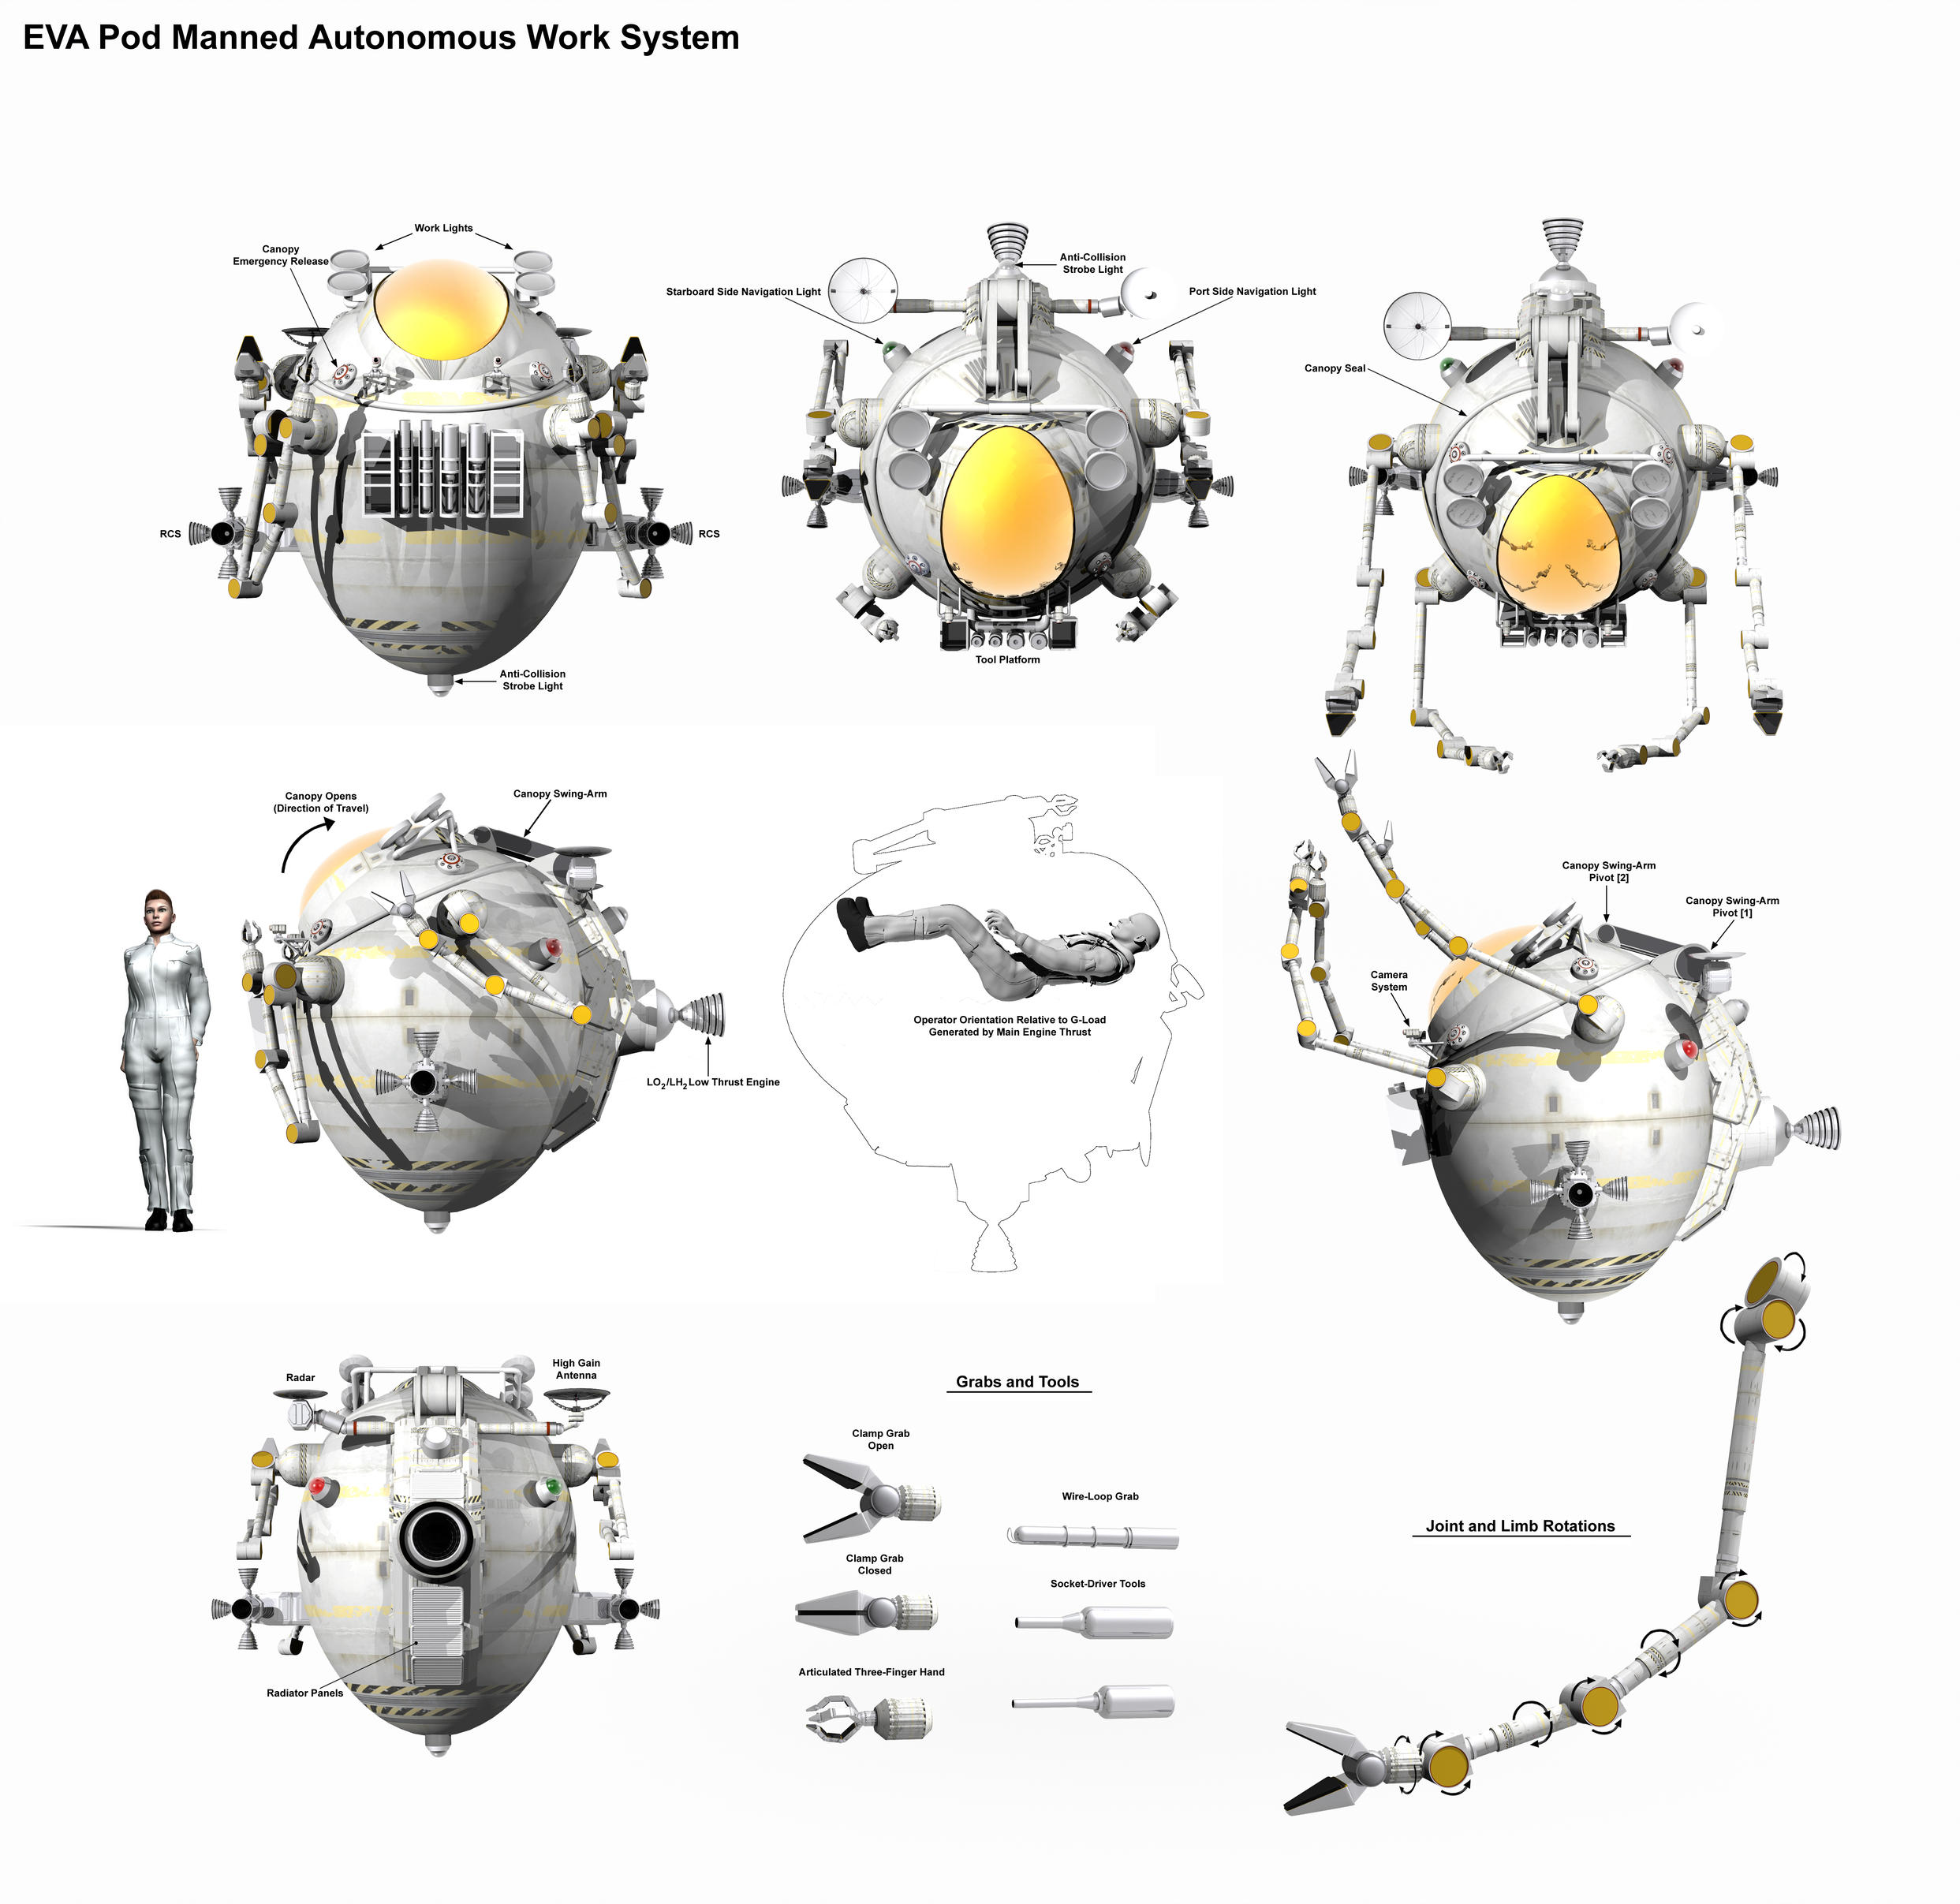 Eva Pod Diagram By William Black On Deviantart